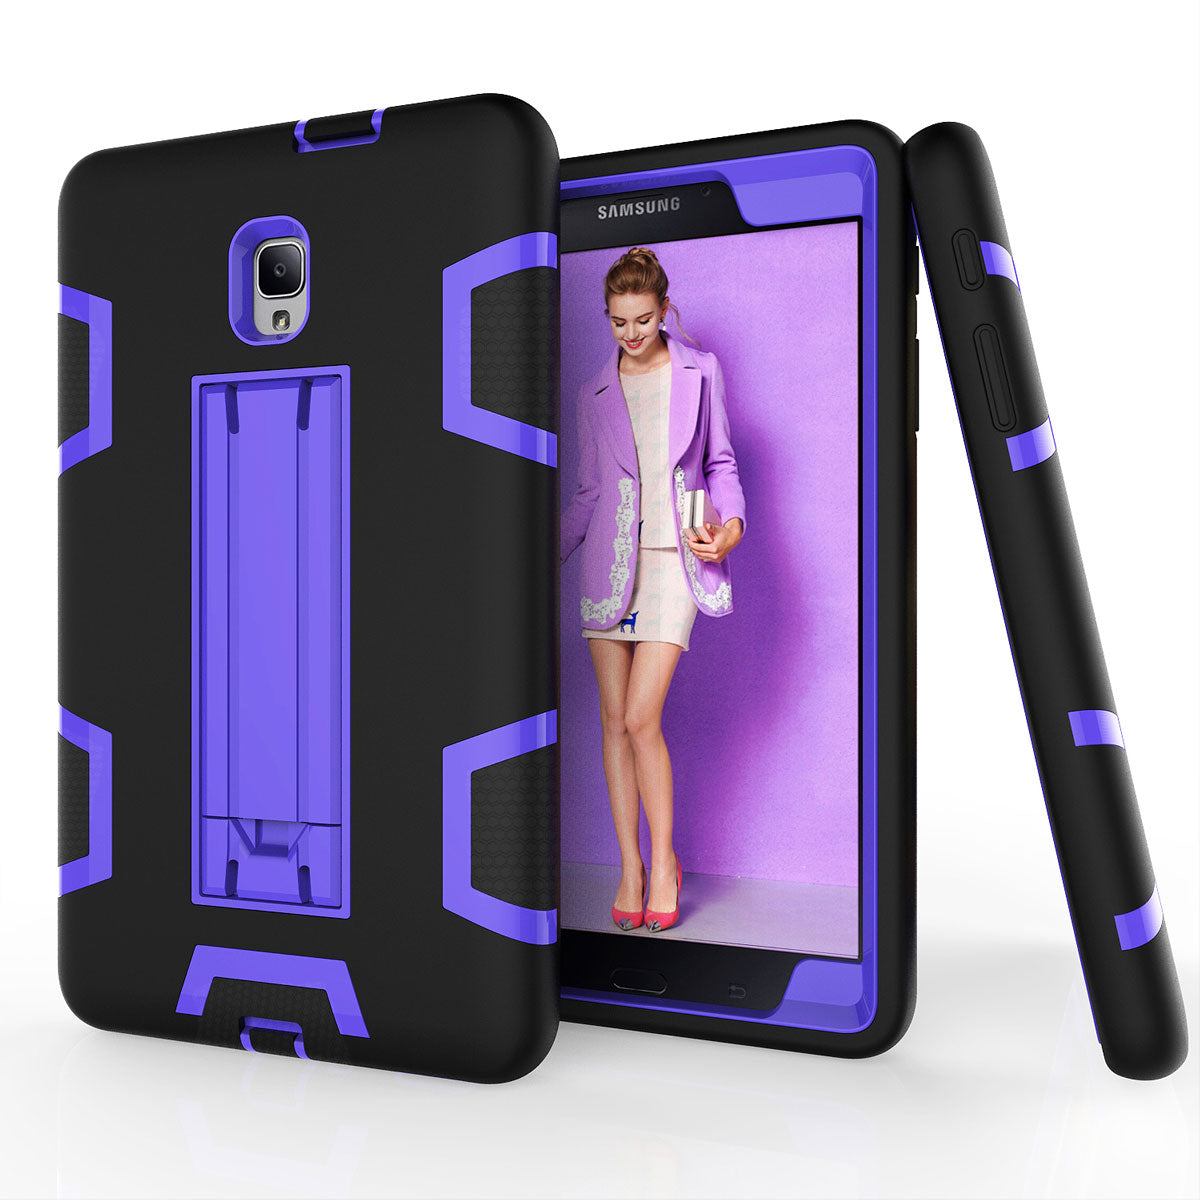 Samsung Galaxy Tab A 8.0 2017 / T380 / T385 Shockproof Duty Hard Stand Case by Modes